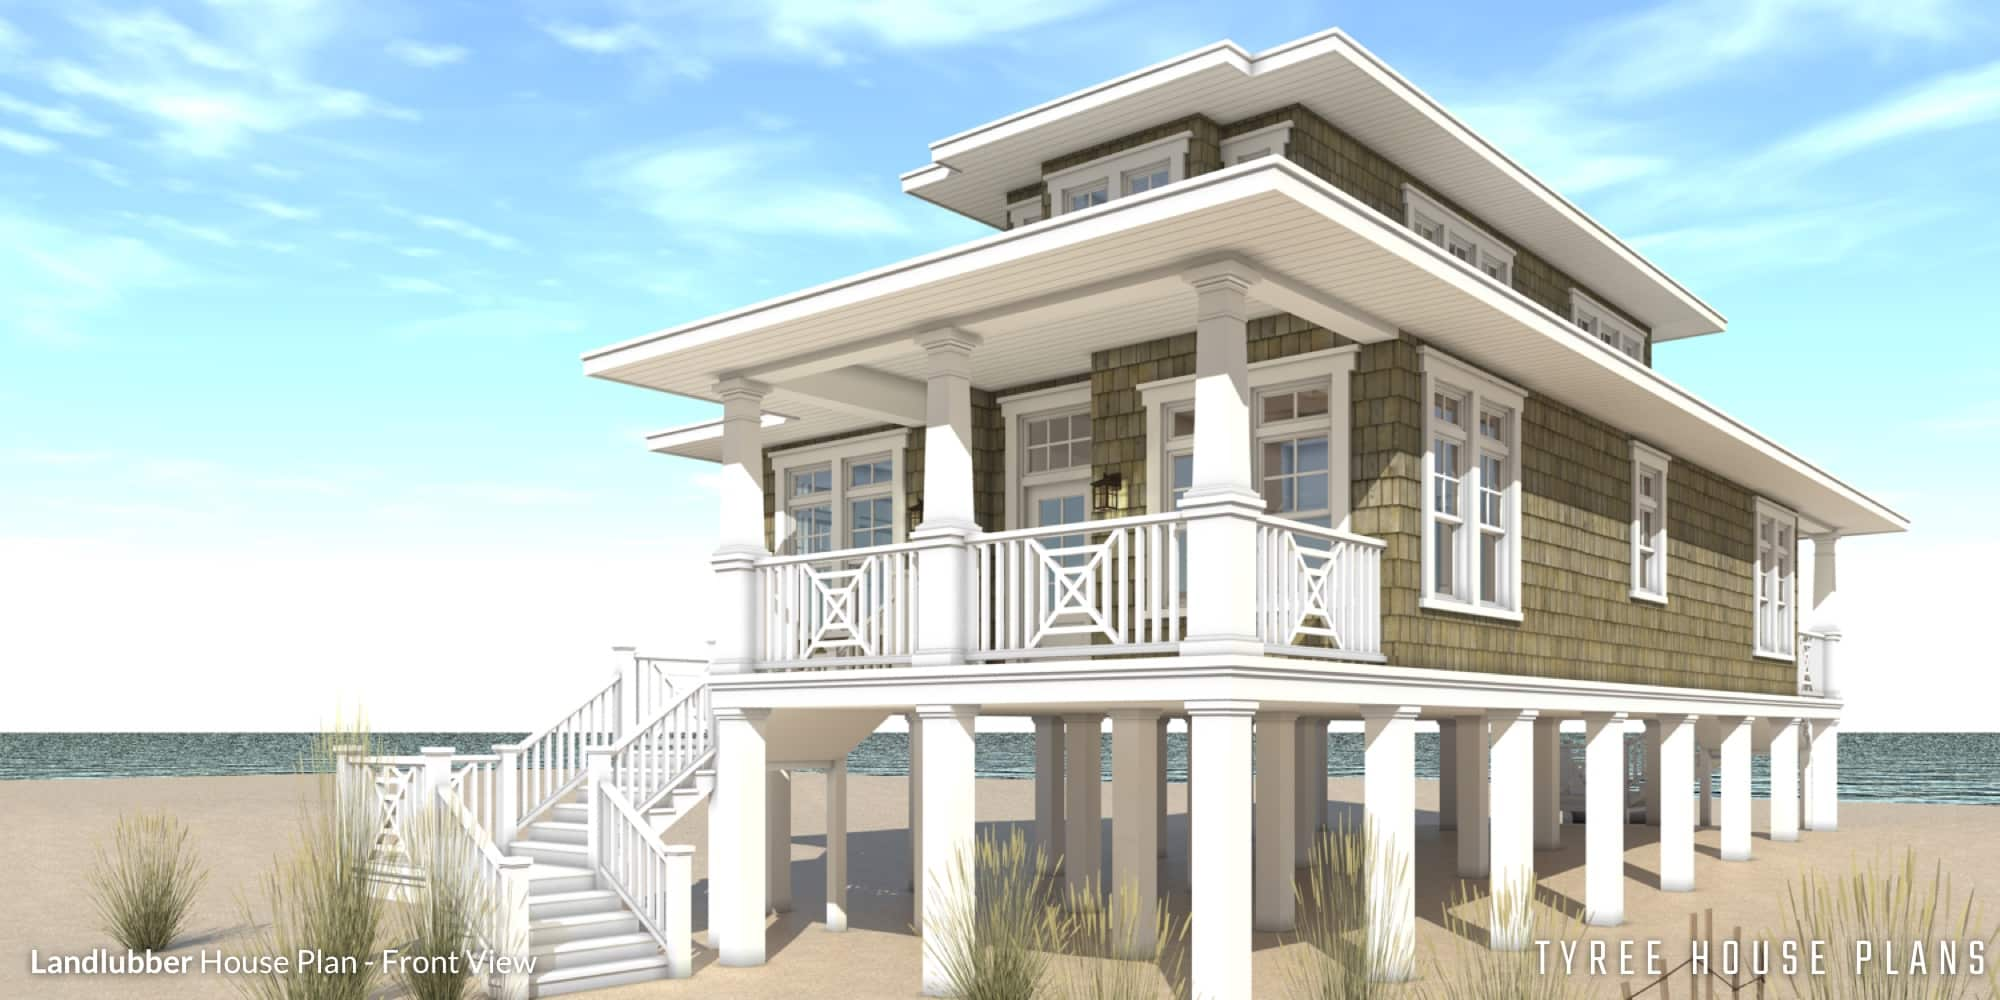 3 Bedroom Beach House Plan. Tyree House Plans. on mountain house plans with view, 3 bedroom house plans with view, hillside house plans with view, contemporary house plans with view, craftsman house plans with view, ranch house plans with view, small house plans with view, open floor plans with view,